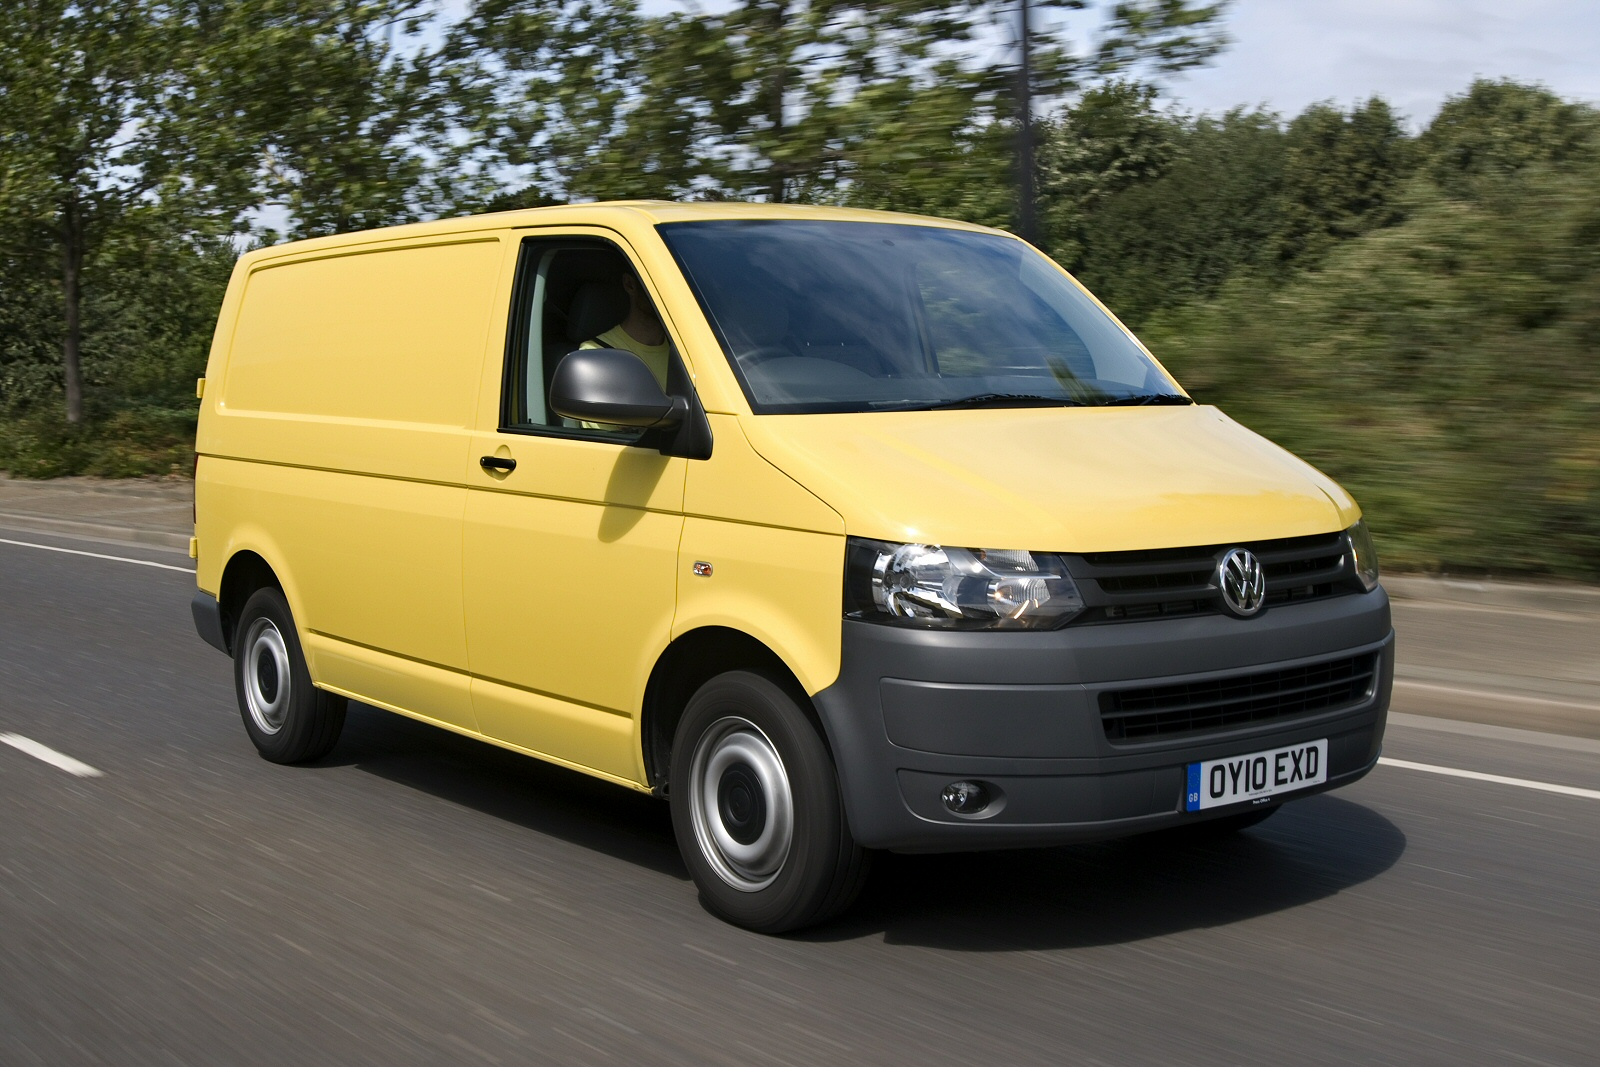 New vw t5 deals cooking coupon code 2018 vw transporter spares or repair vw t4 spares or repair ebay find great deals on ebay for vw t4 spares or repair and vw transporter spares or repair shop fandeluxe Choice Image